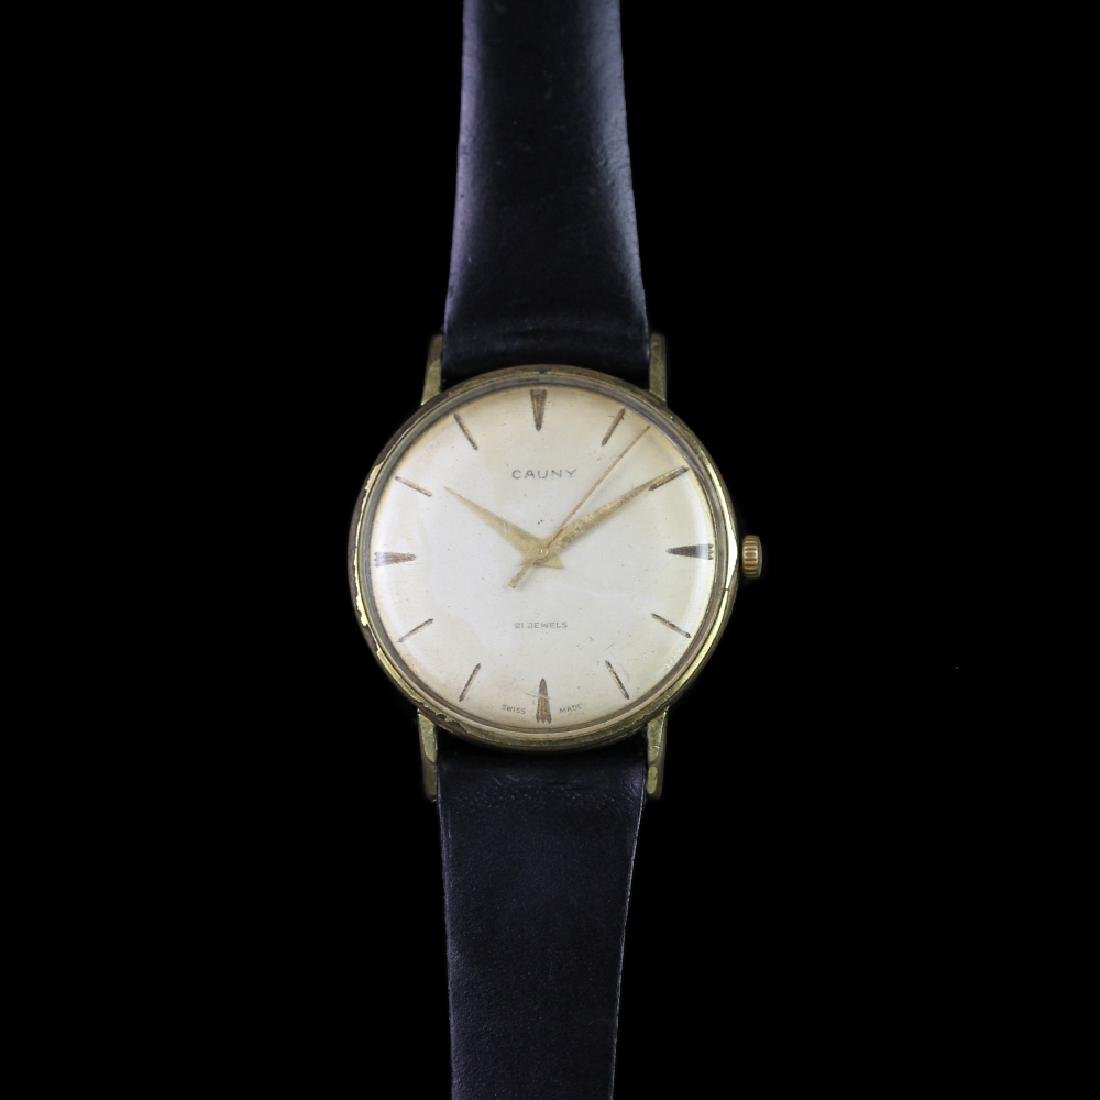 *TO BE SOLD WITHOUT RESERVE* GENTLEMEN'S CAUNY GOLD